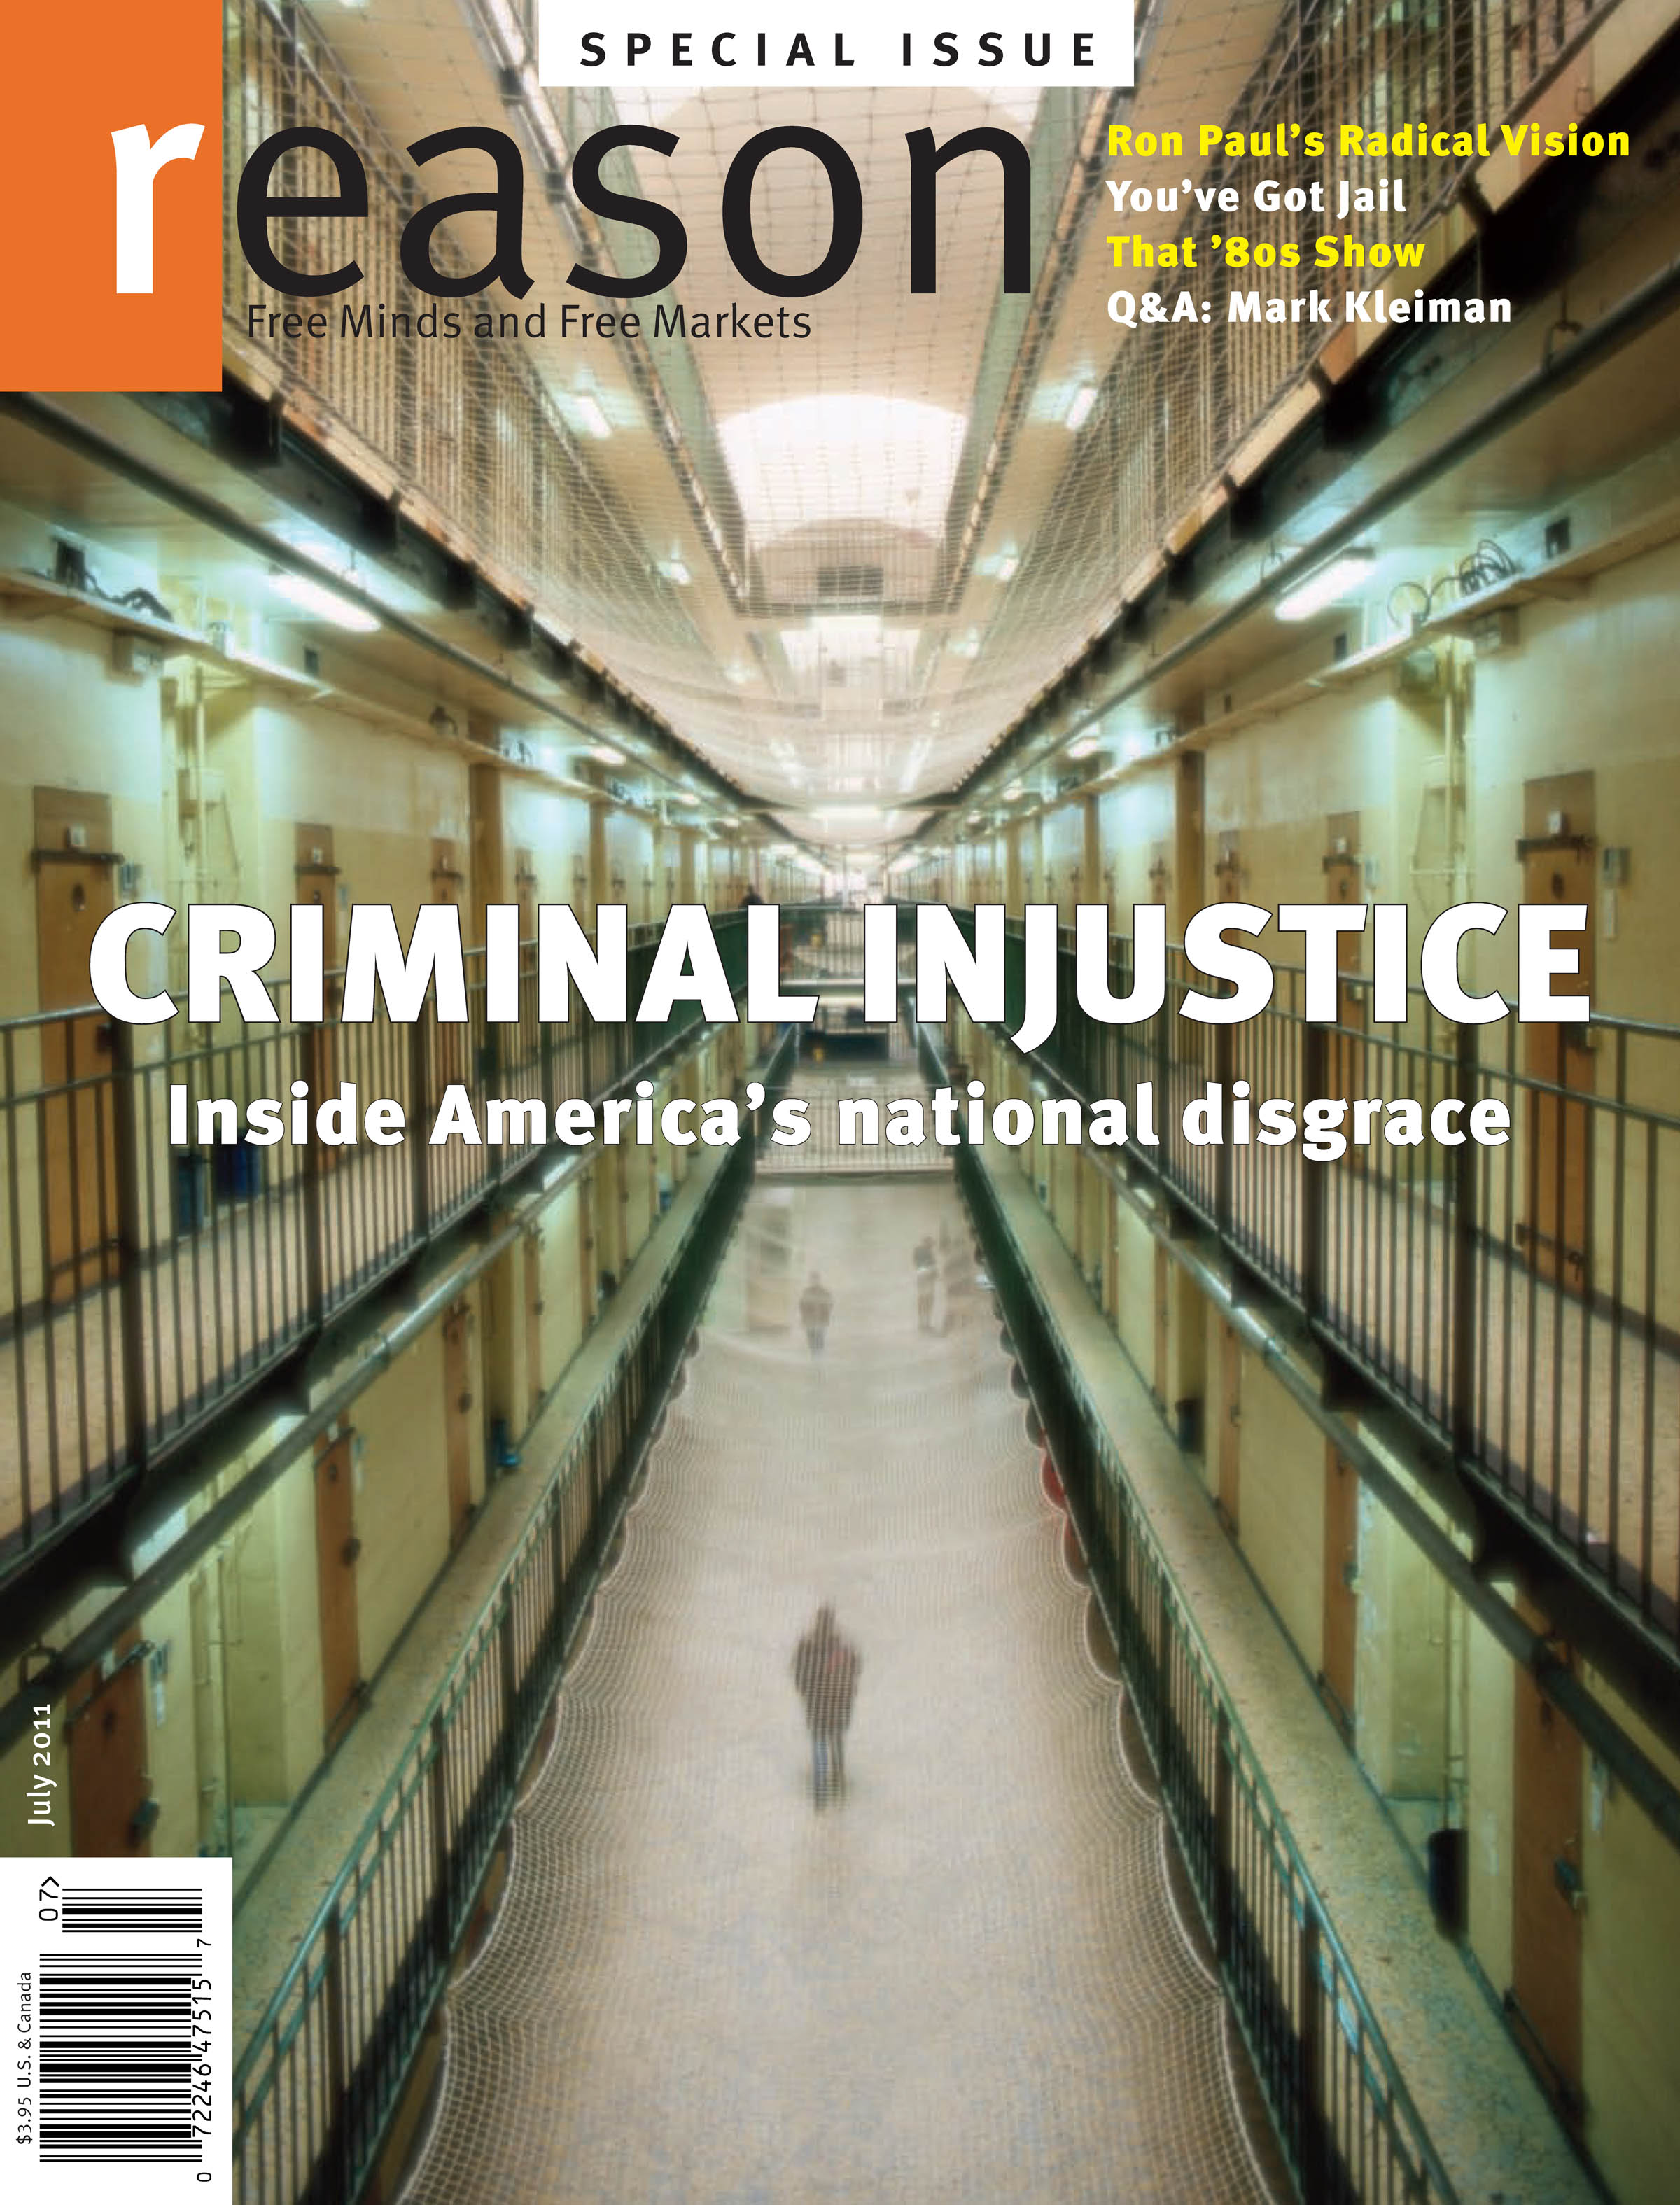 the issues of injustices in the american prisons His prison memoir, a life inside: a prisoner's notebook , as well as lots of other prison memoirs, like porridge and passion by the vast majority of those incarcerated in the united states received inadequate or incomplete educational opportunities in their lives before prison, and while behind bars.